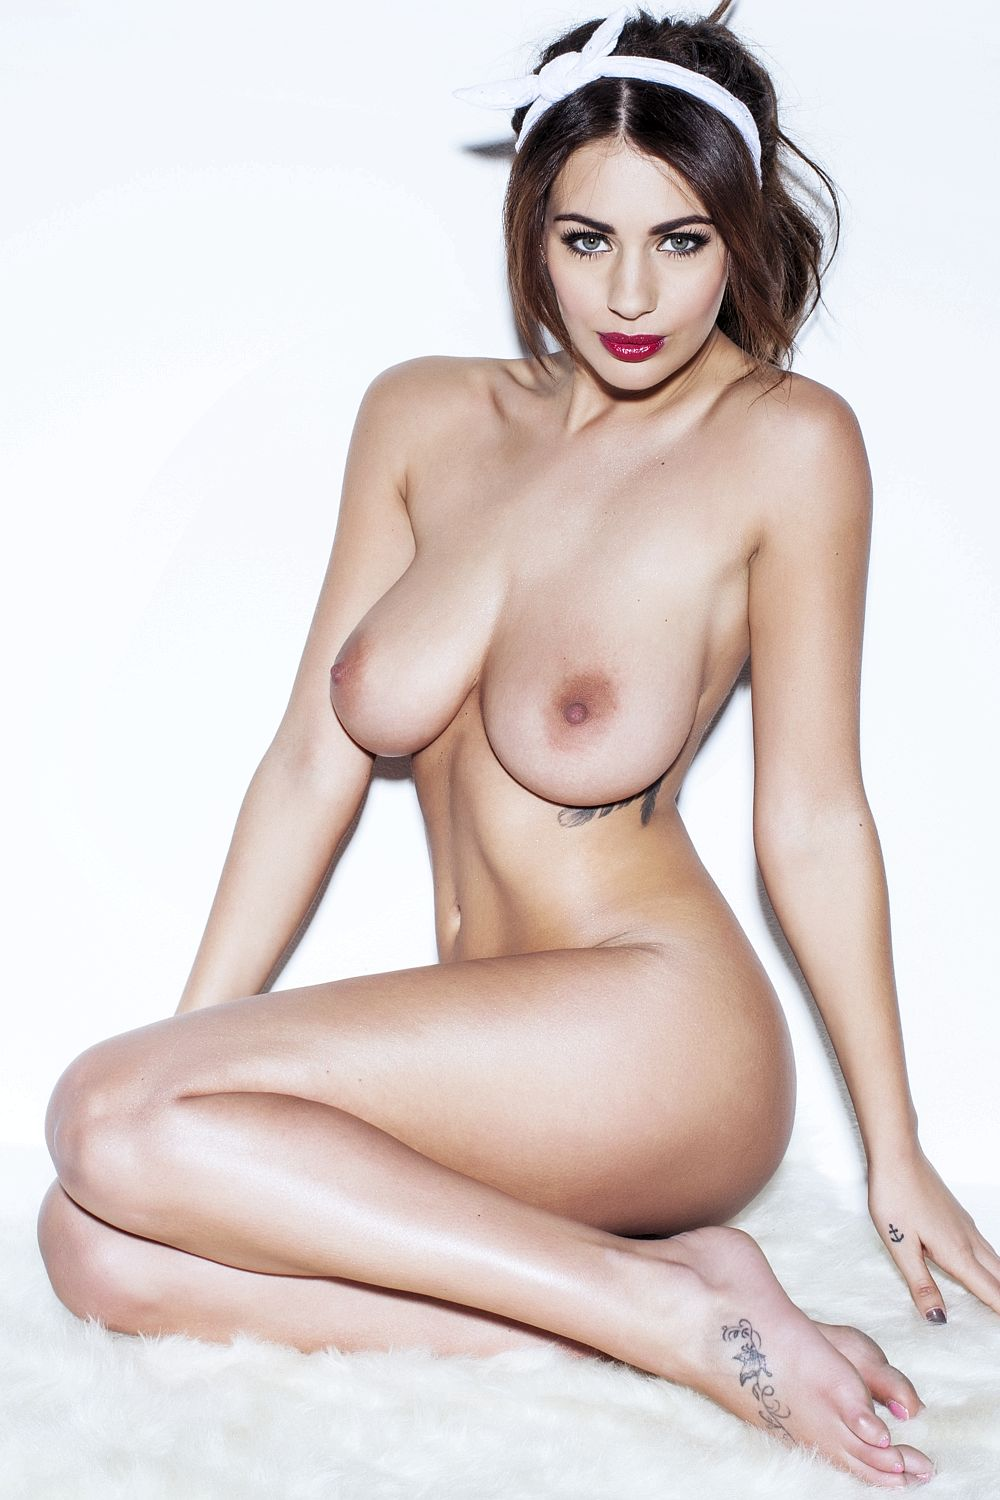 page 3 nude